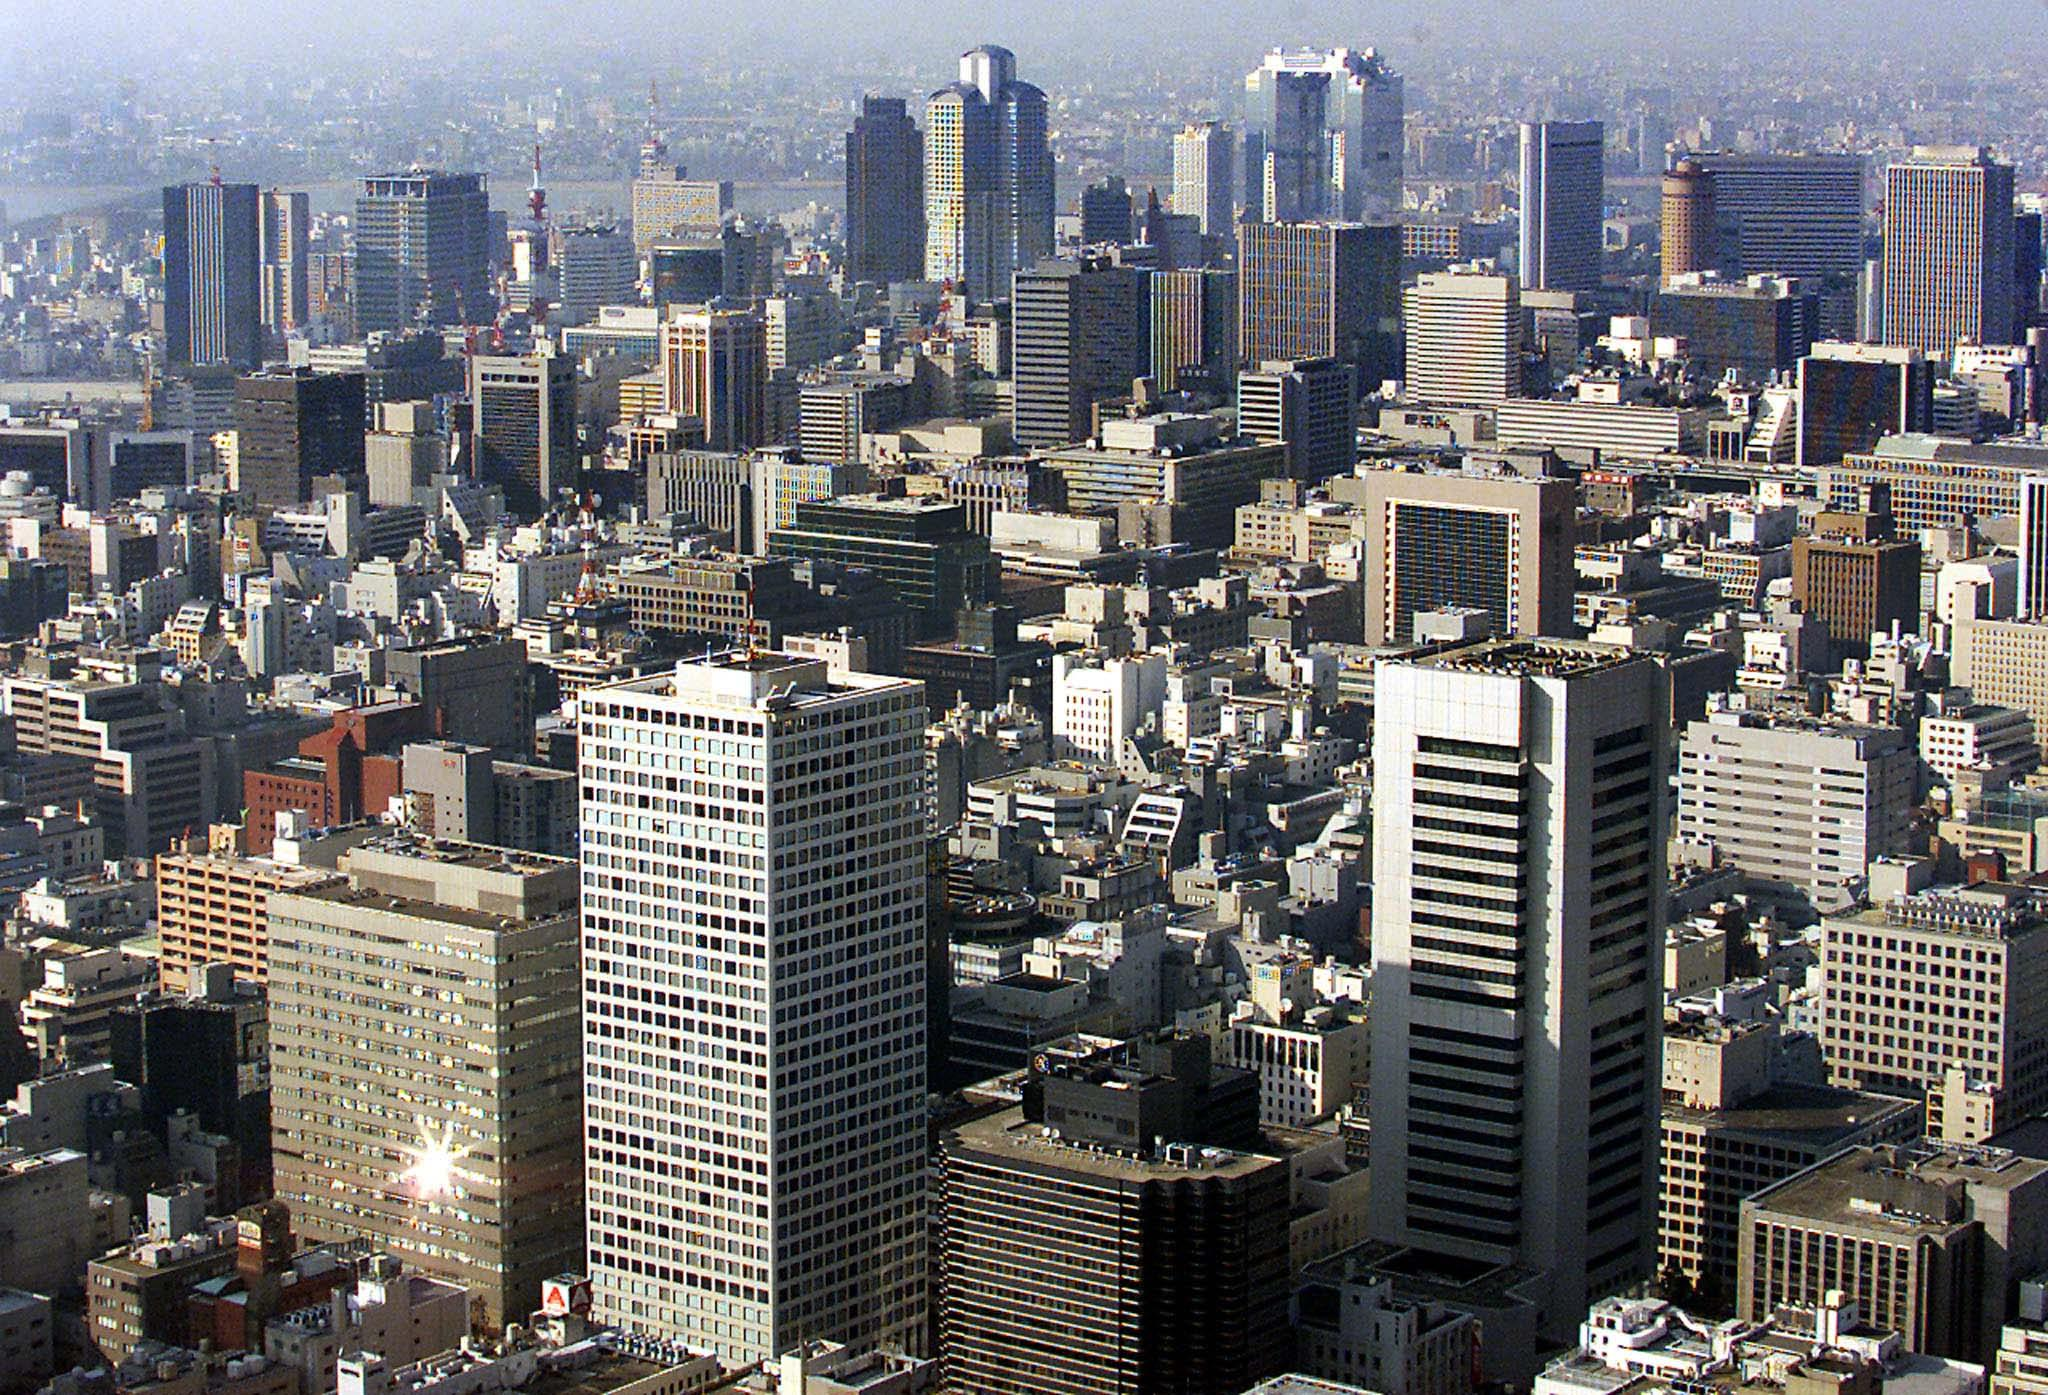 Central Osaka packed with skyscrapers